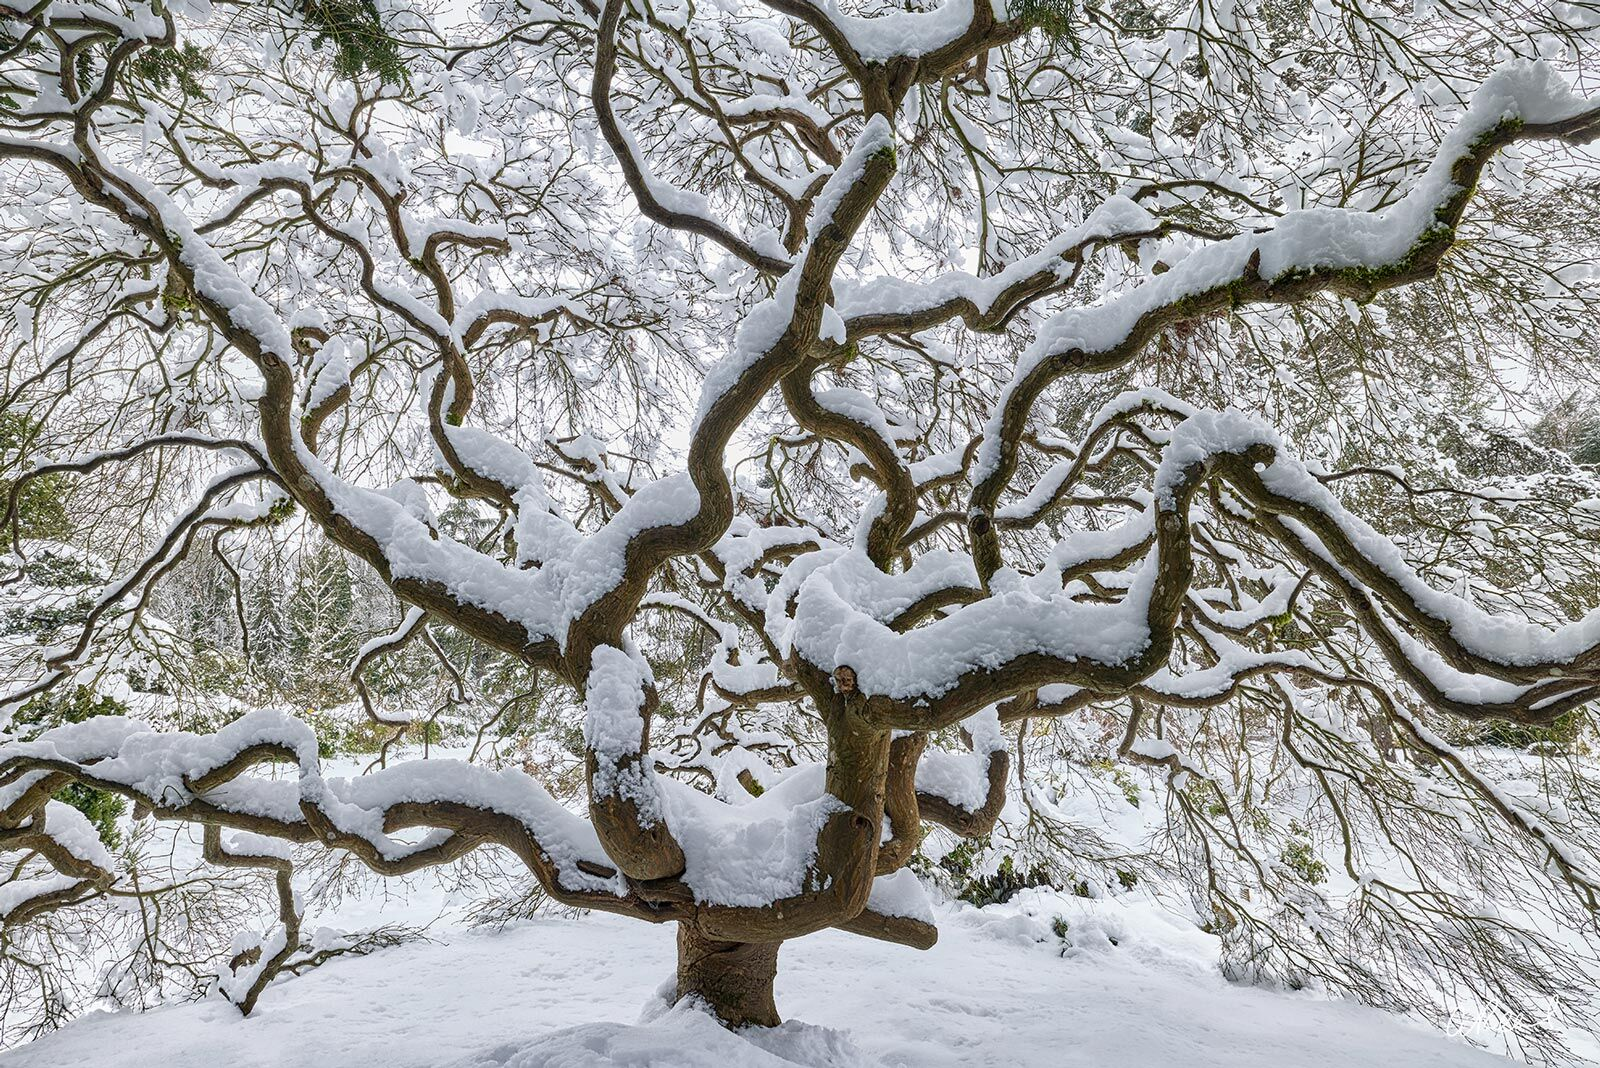 Fine Art Limited Edition of 50 - A Japanese Maple tree covered in a blanket of fresh white snow in this photograph by Aaron Reed...